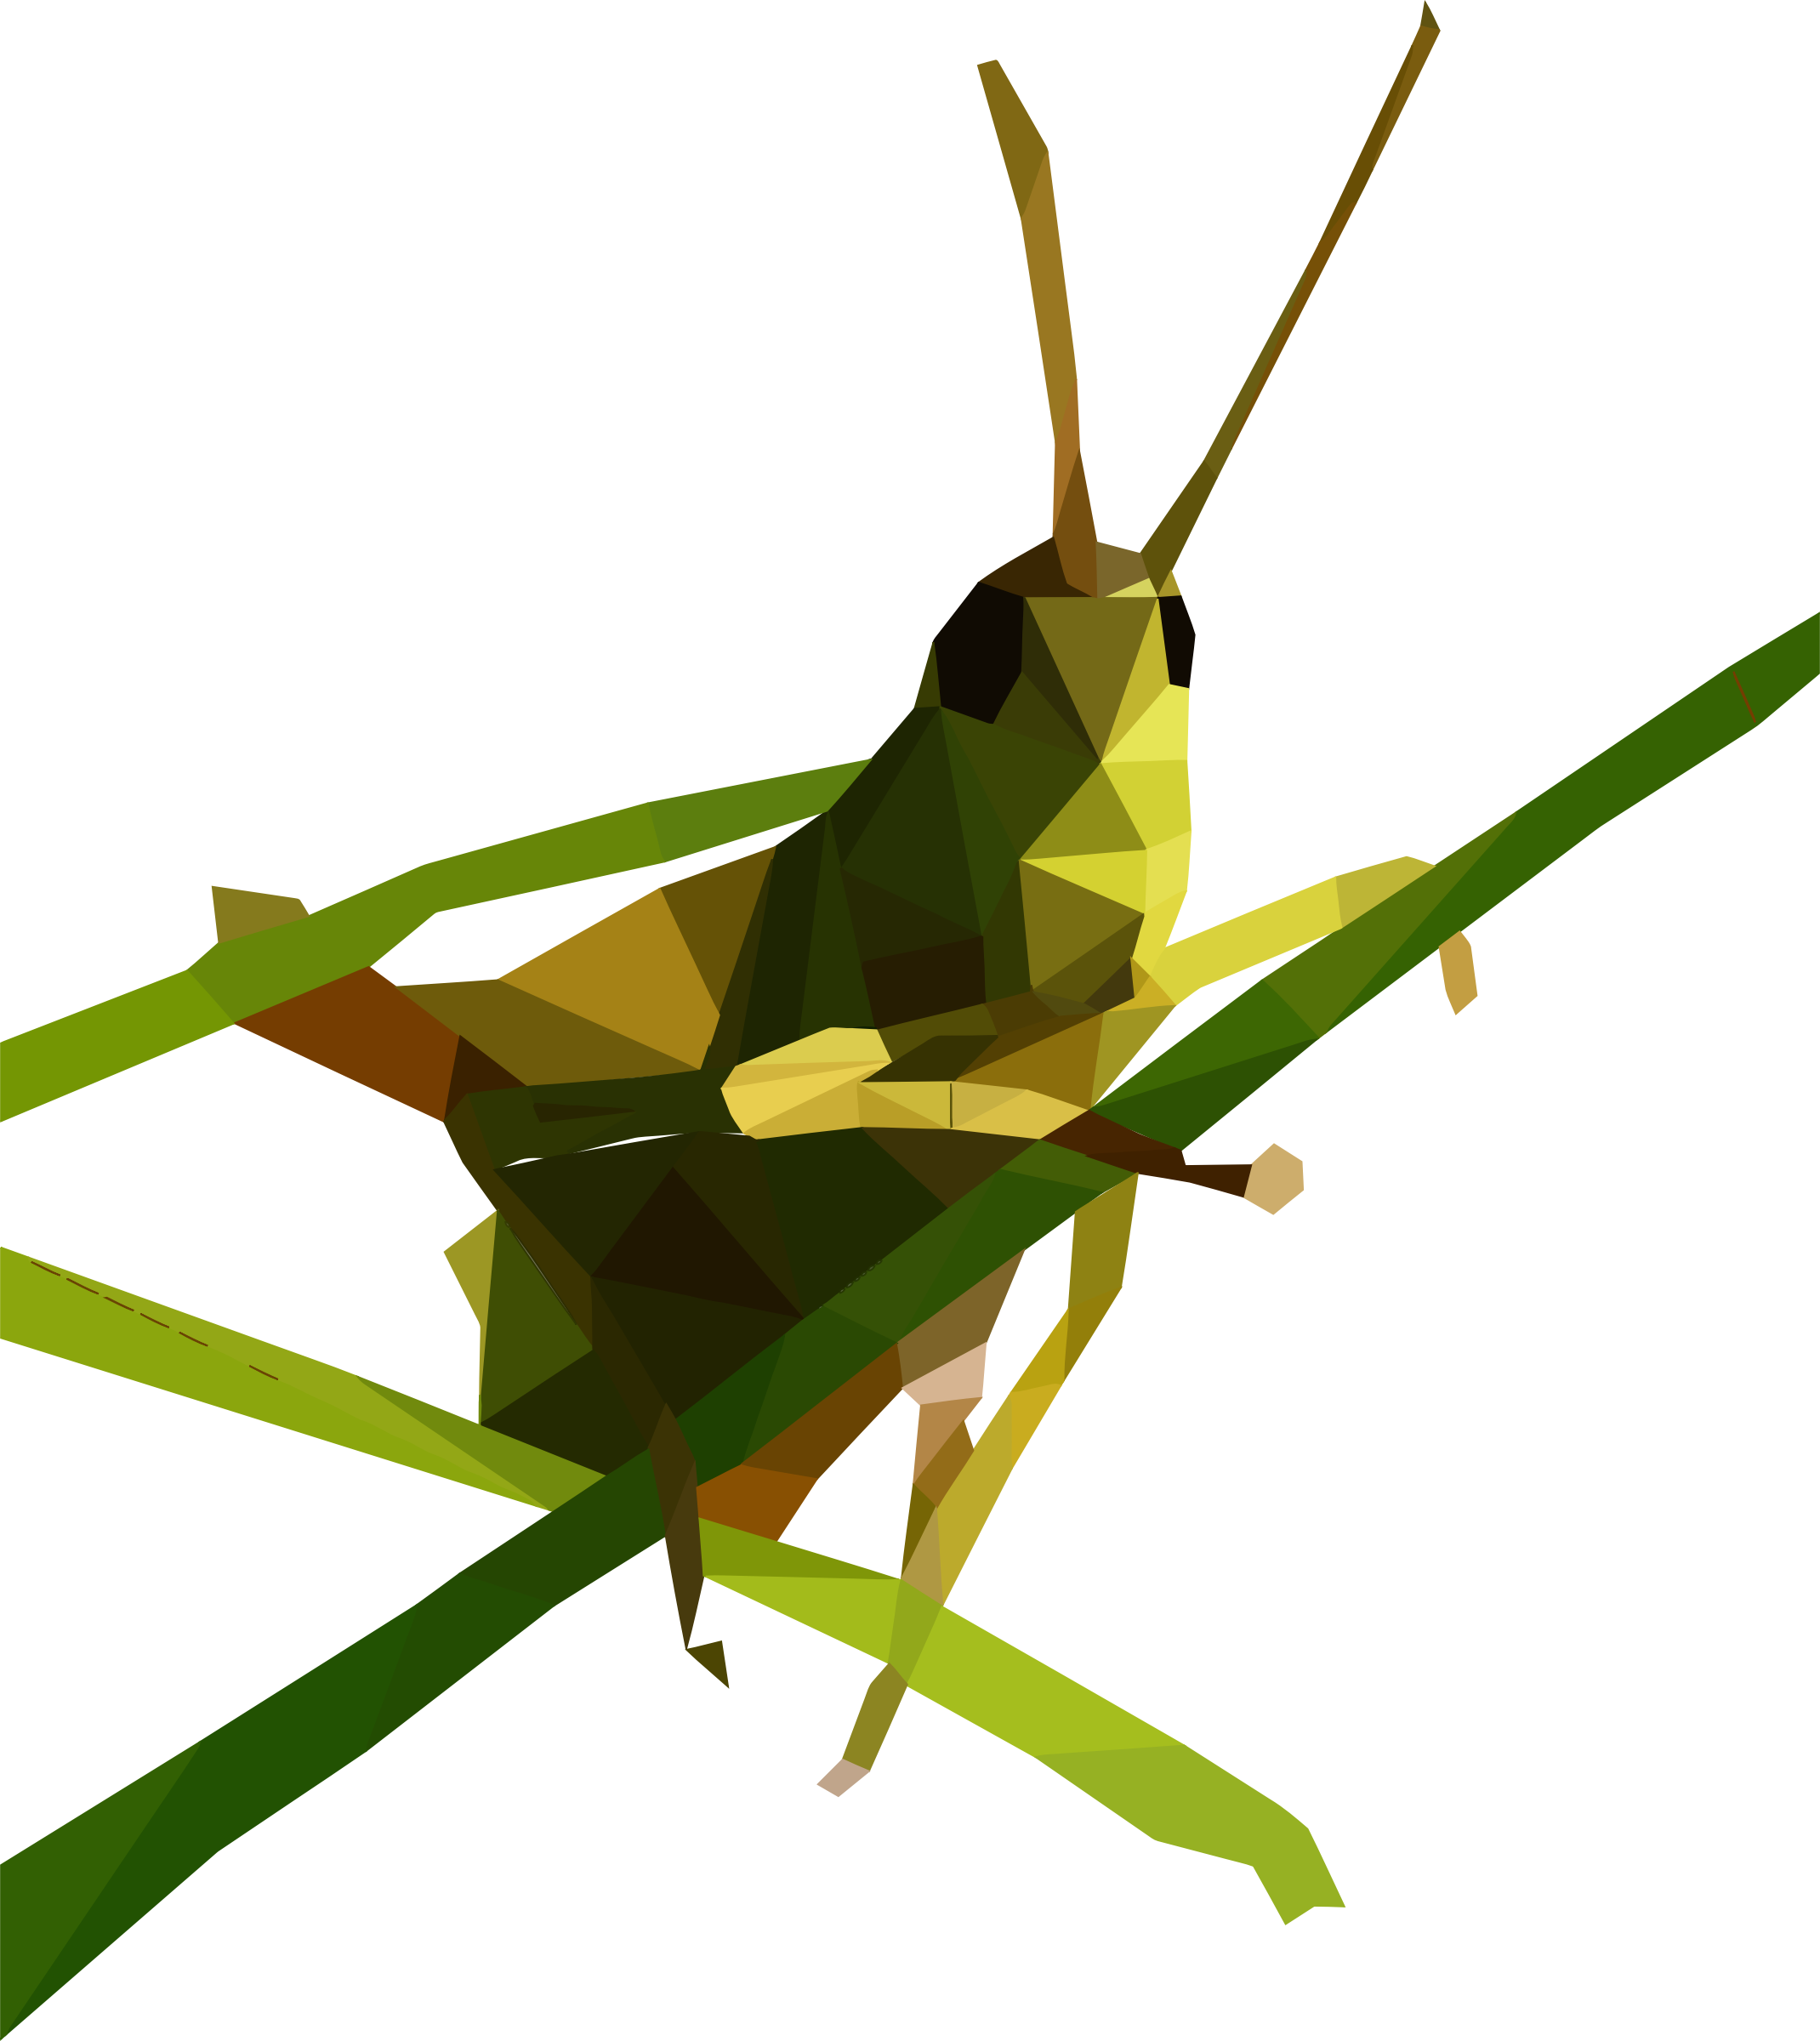 Low Poly Grasshopper by GDJ